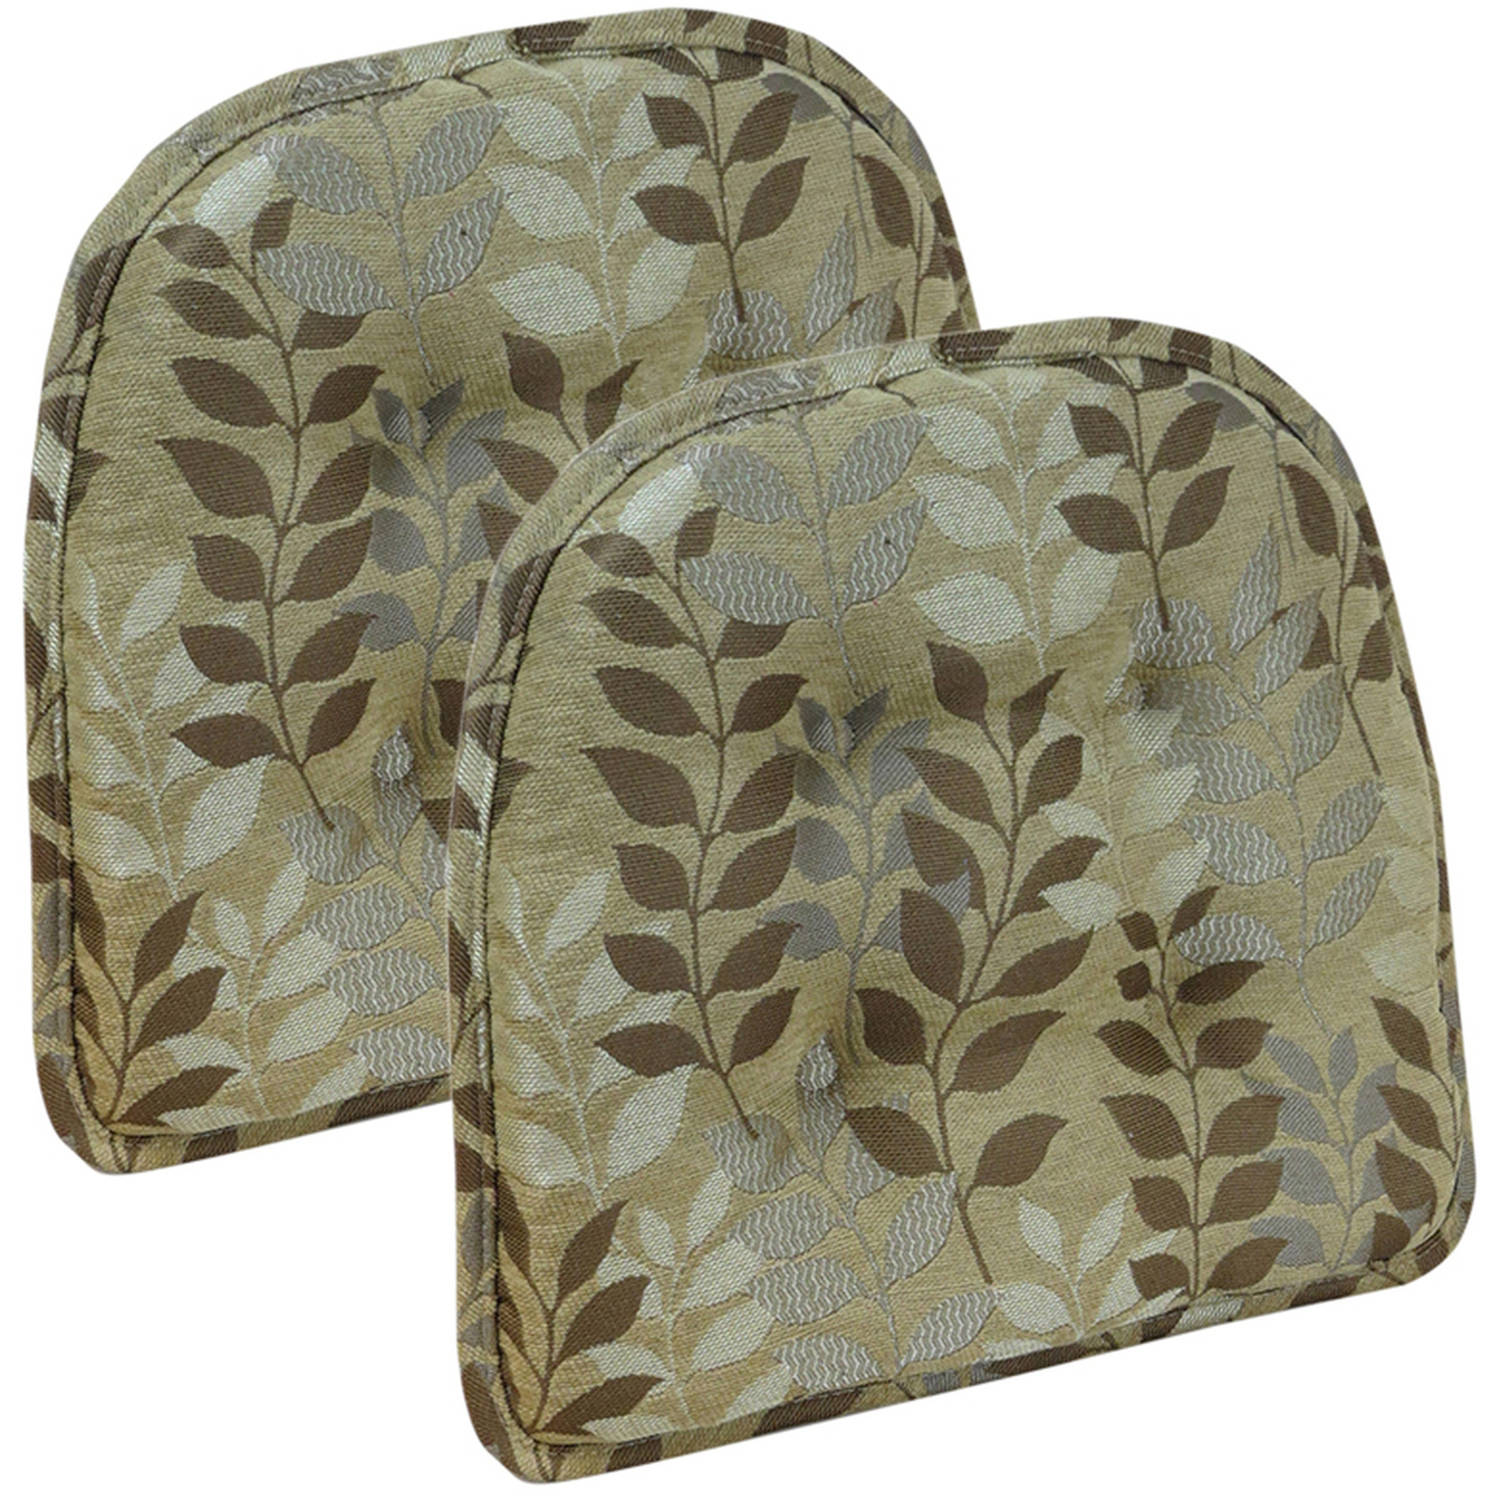 "Gripper Non-Slip 15"" x 16"" Dora Ascending Leaves Tufted Chair Cushions, Set of 2"